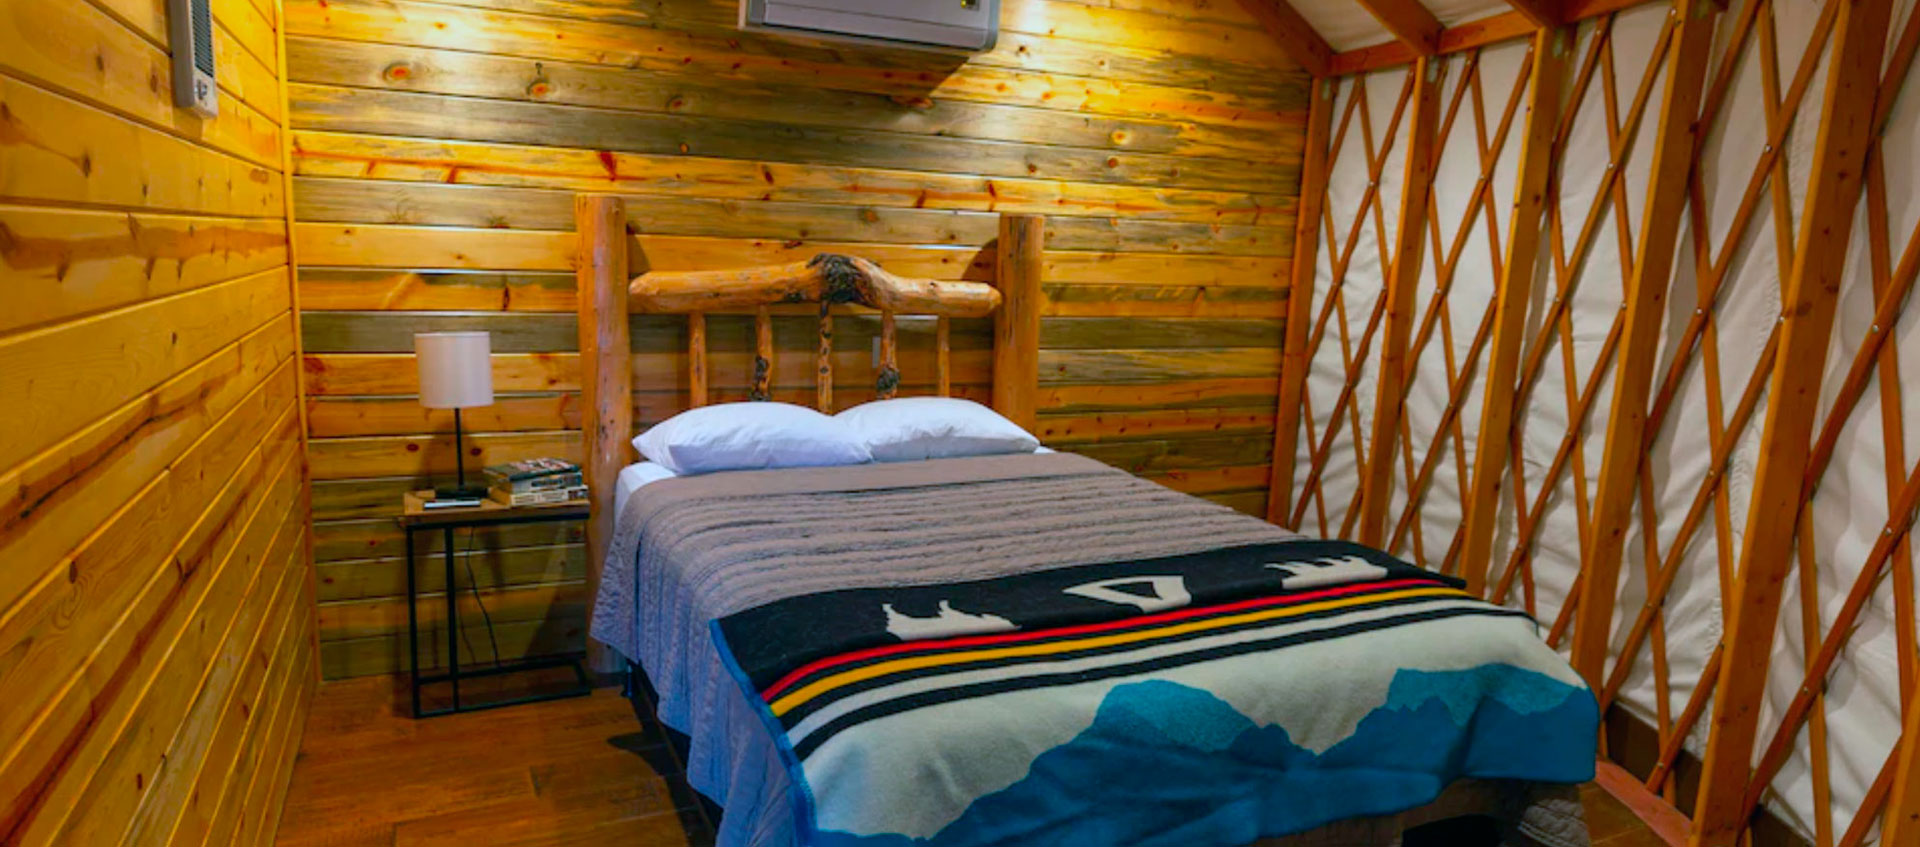 A Bedroom in The Yurt at Craig | Fly Fishing Vacation Rental in Craig, MT